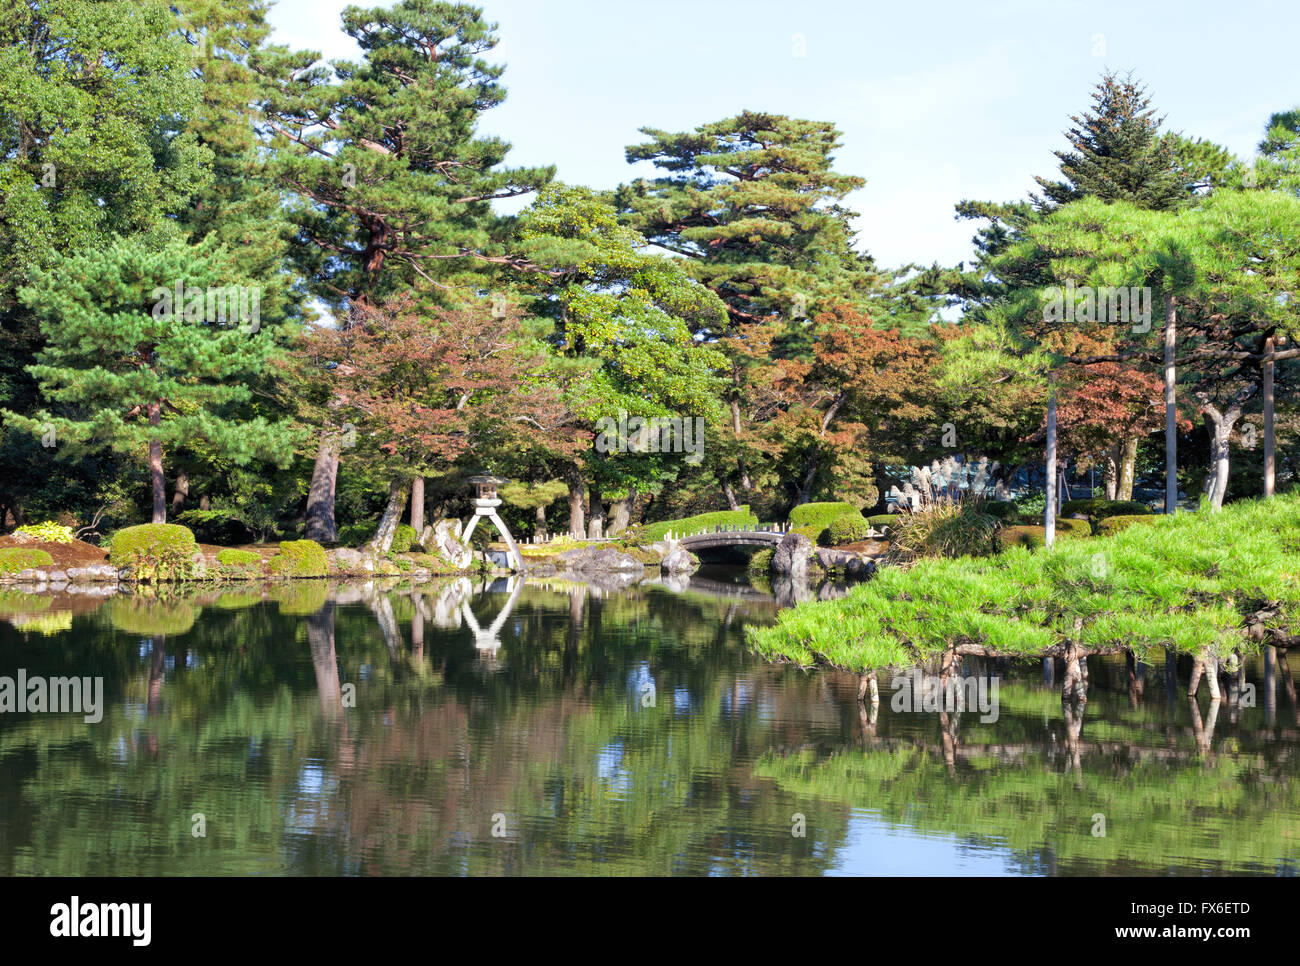 japanese style garden park with stone bridge lantern on a lake edge with green pine trees autumn leaf trees